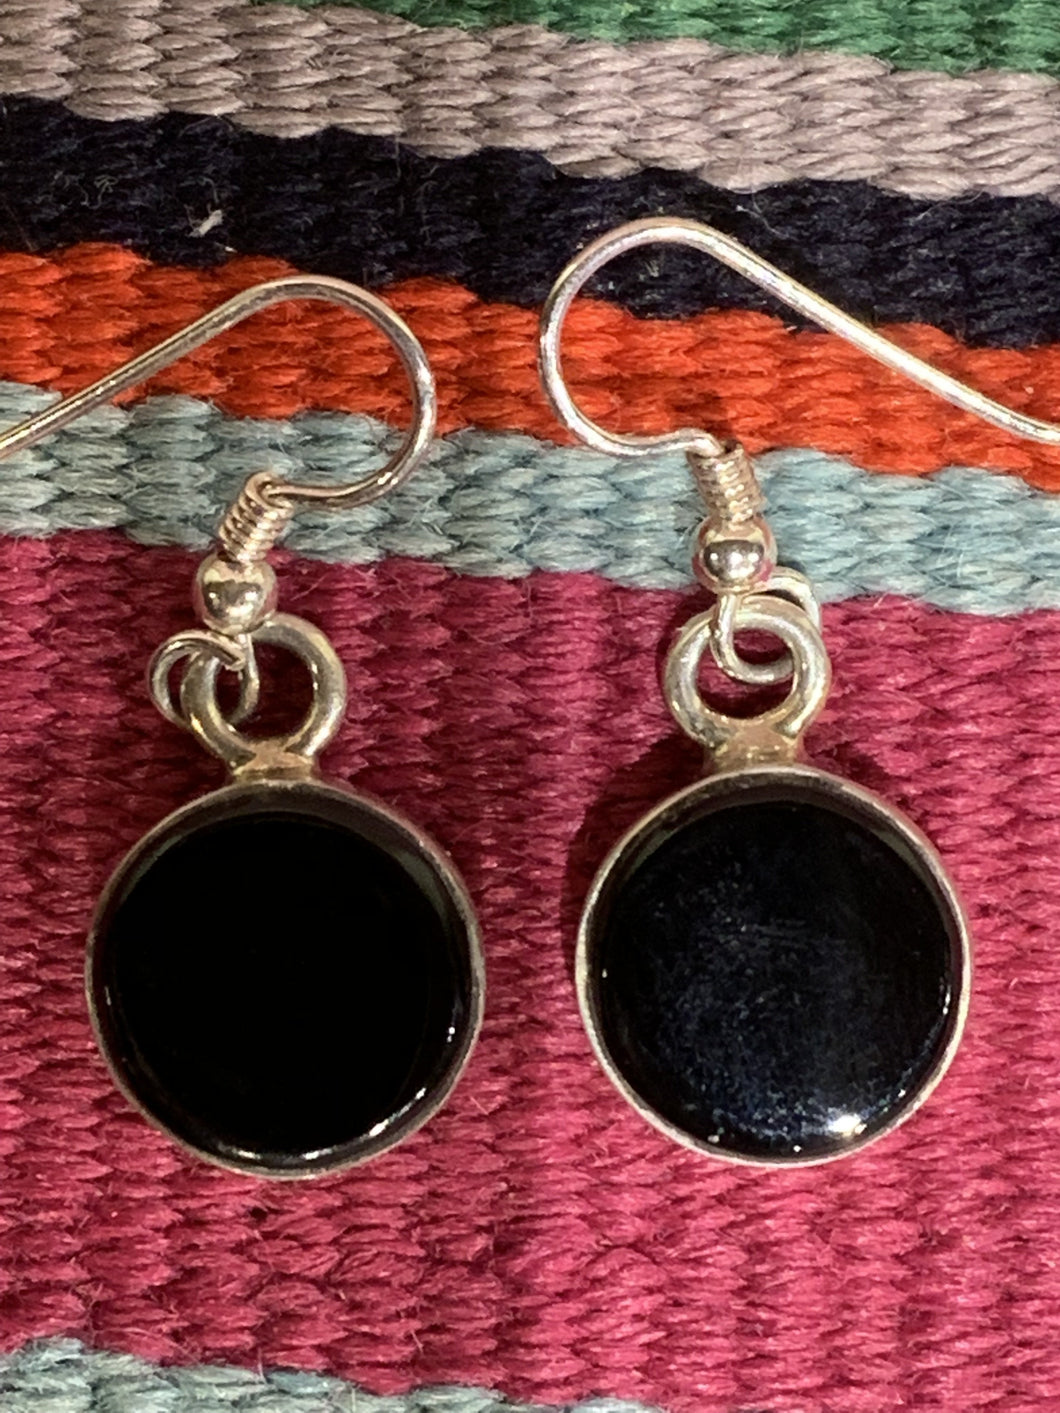 Black Jade Earrings by the Dukepoo's